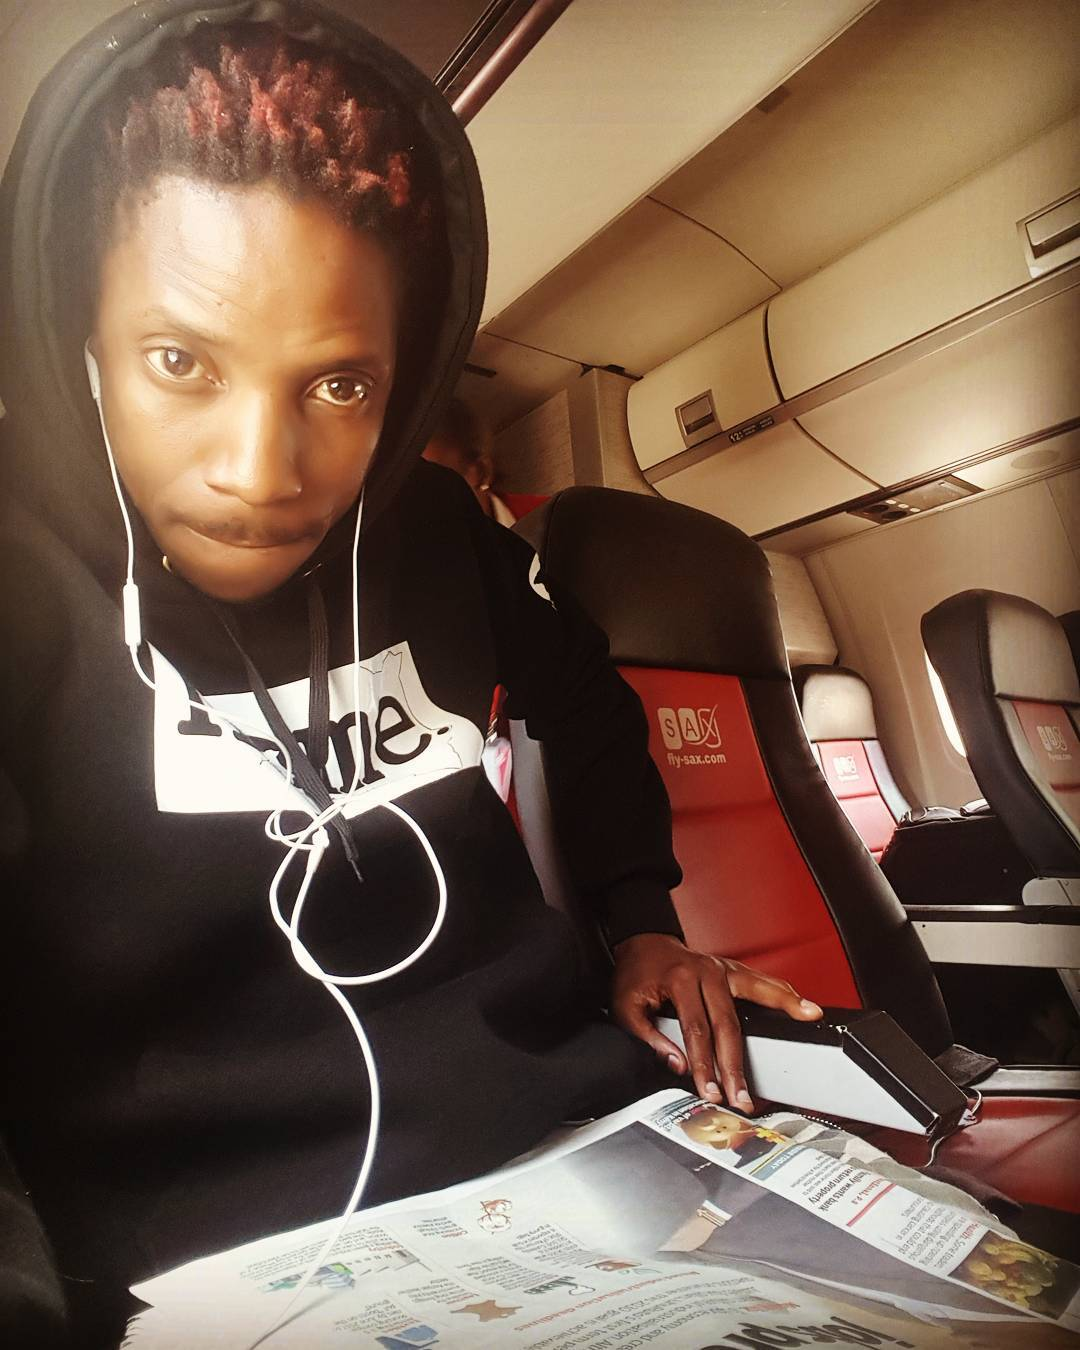 Eric Omondi2 - 'Nitampelekea polisi!' Eric Omondi denies claims he refused to pay car hire bill